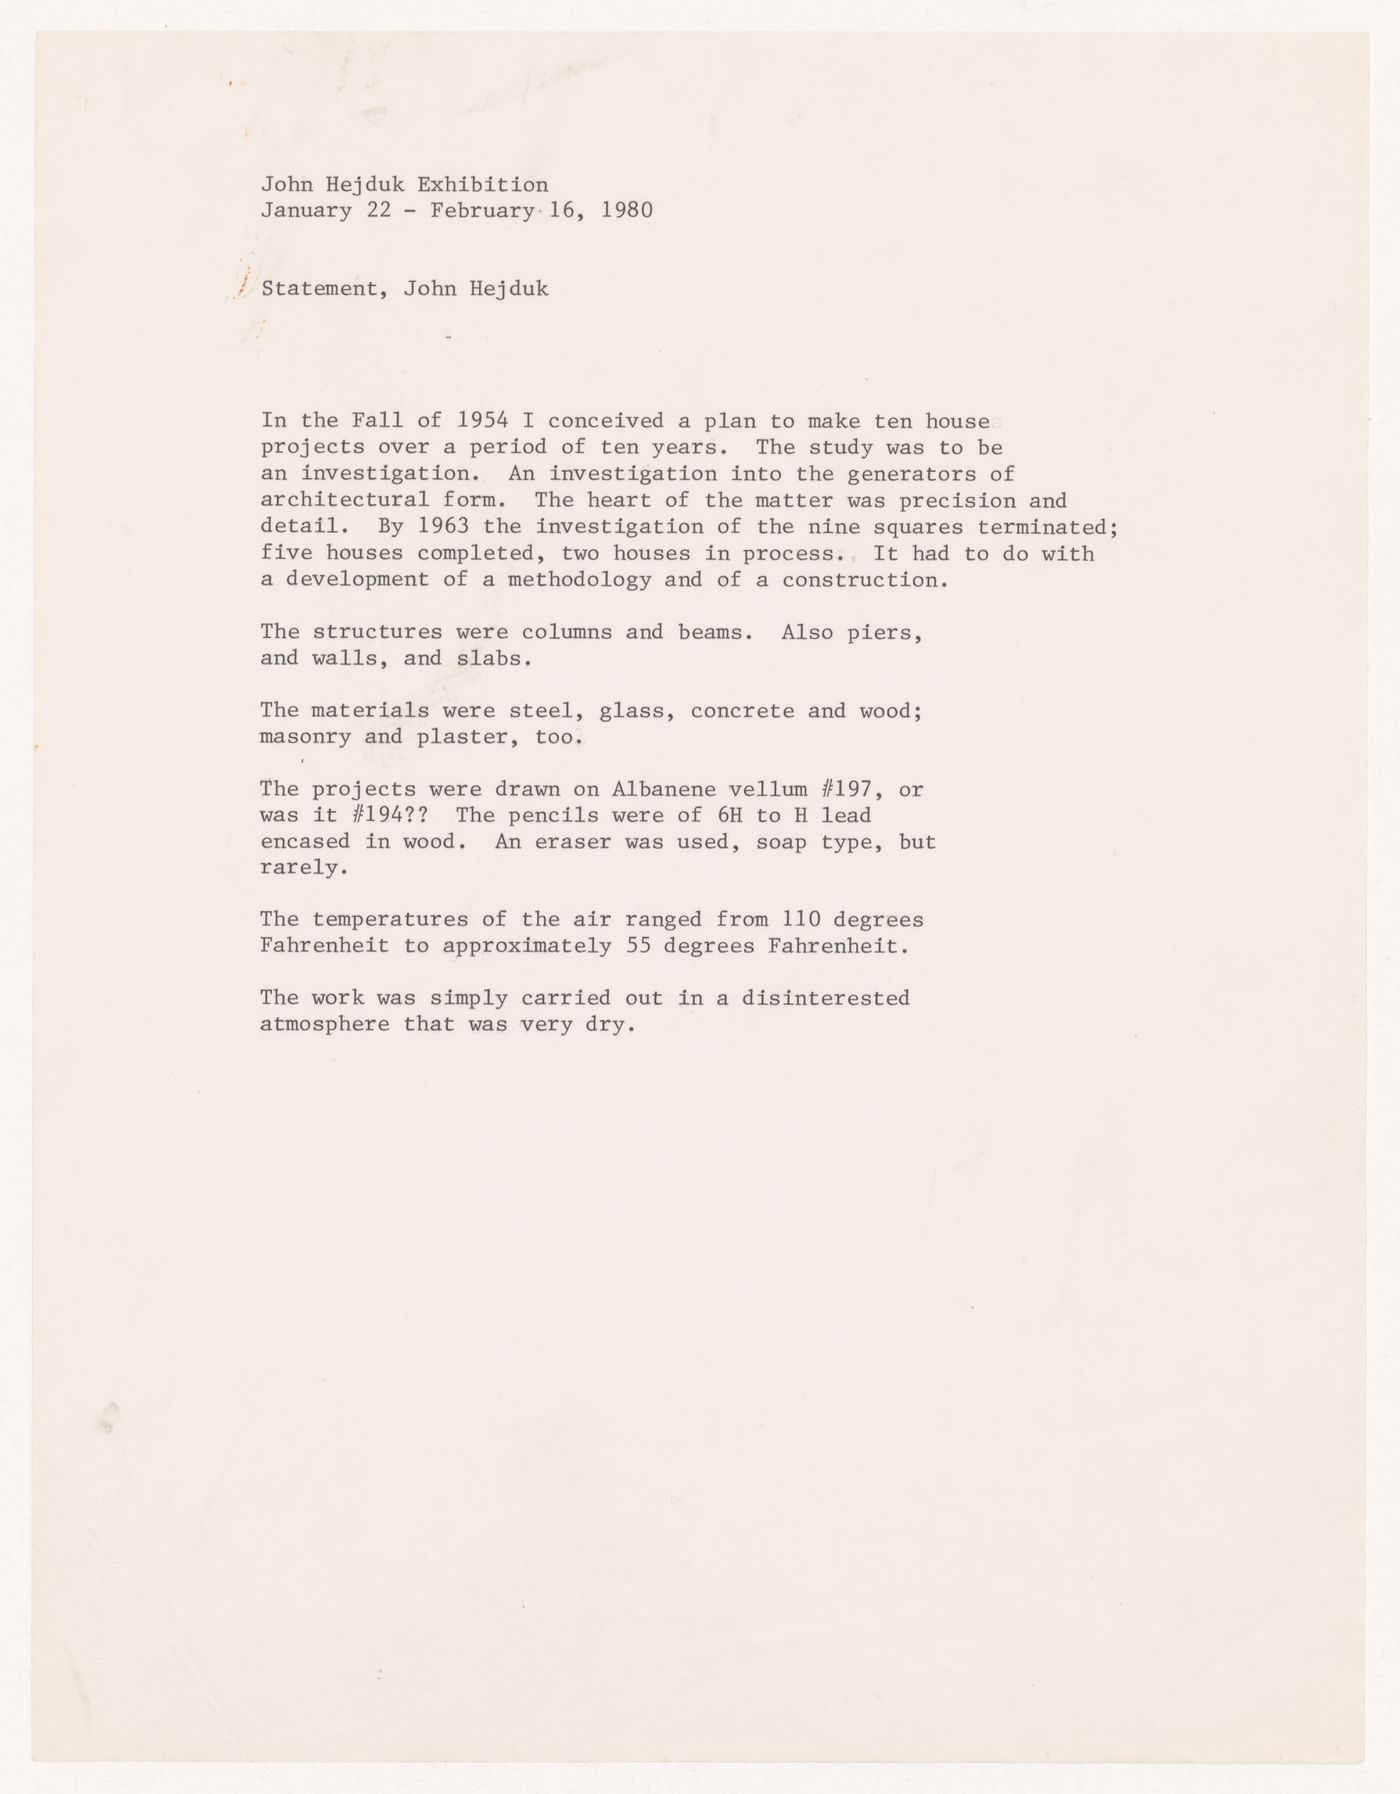 Statement by John Hejduk for exhibition of January 22 - February 16, 1980 (from the project file Exhibition Catalogues)